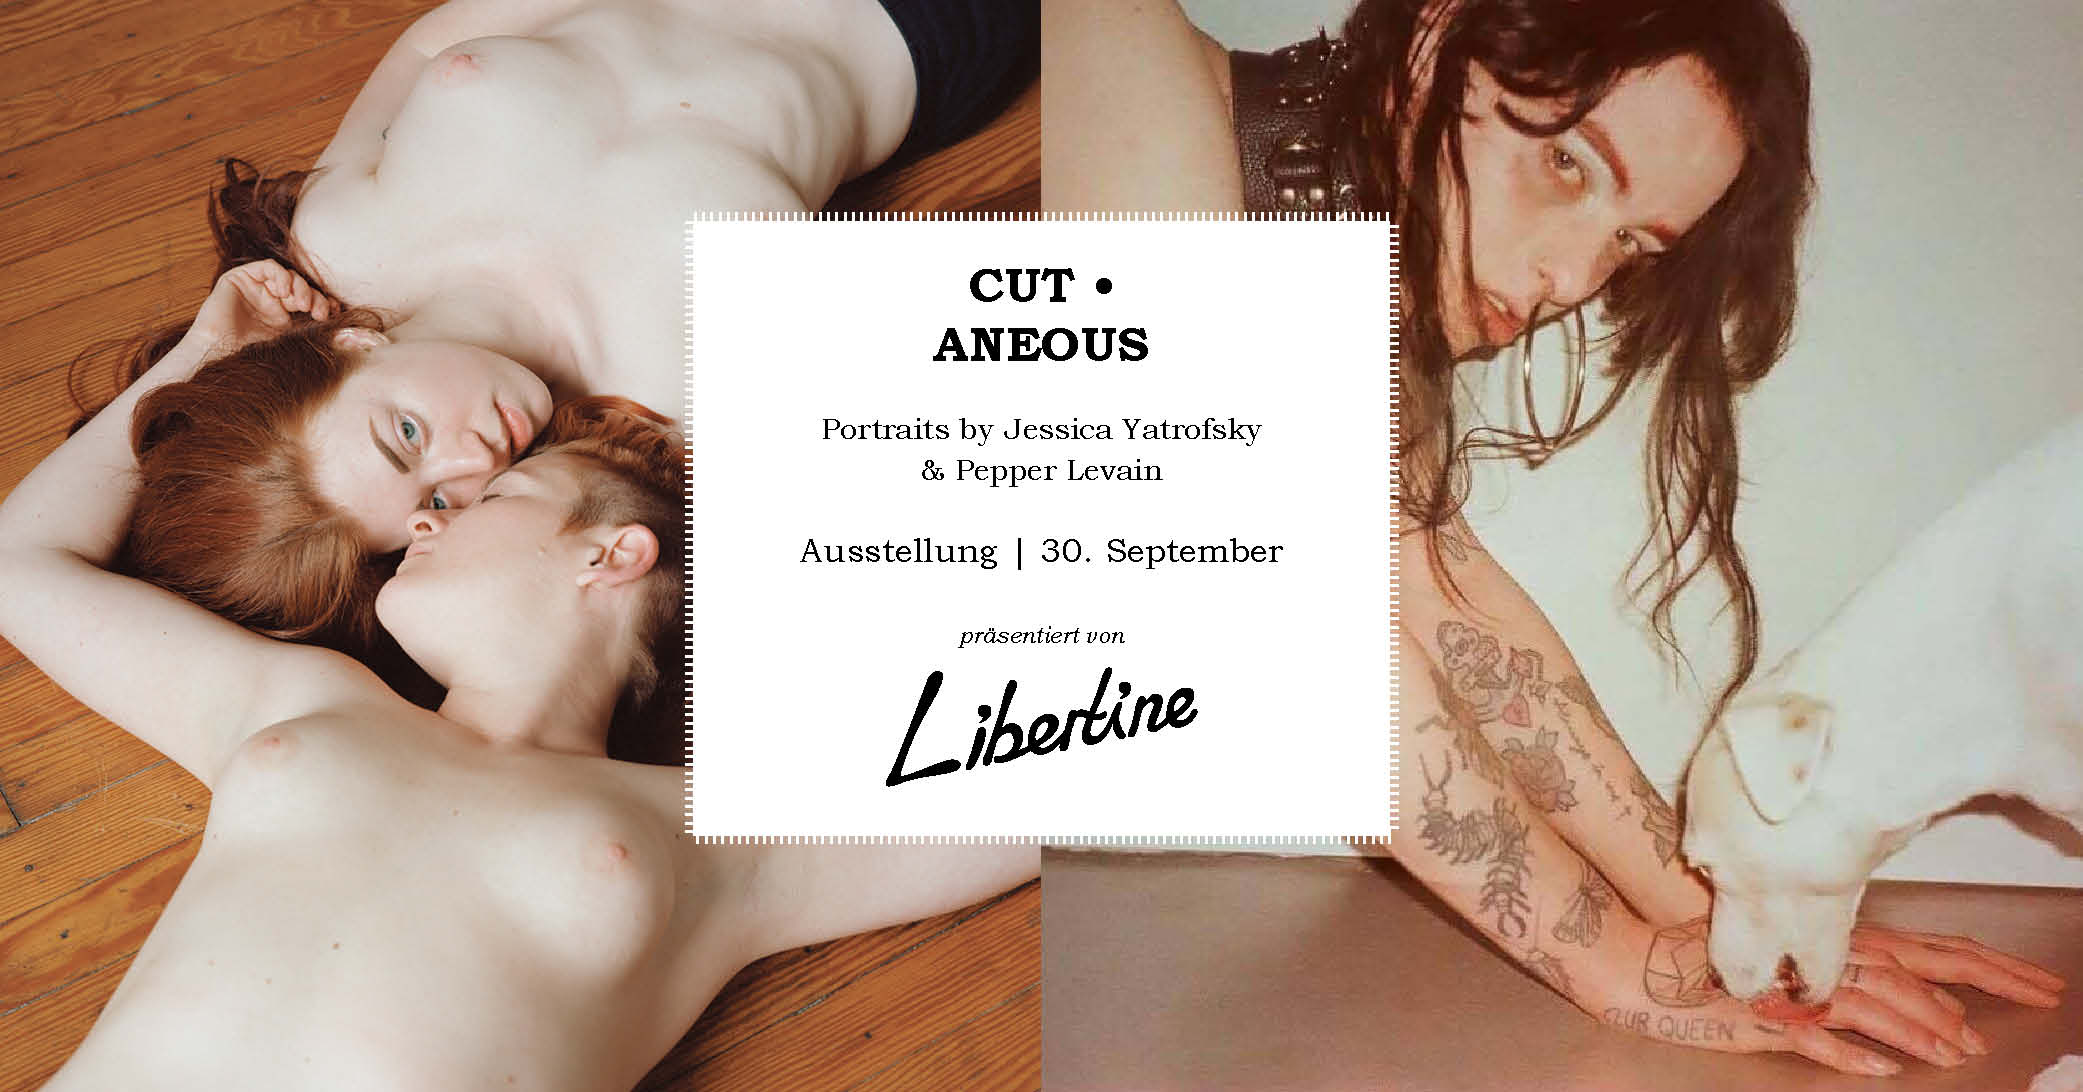 LIBERTINE Präsentiert:  CUT – ANEOUS | Exhibition & Artist Talk